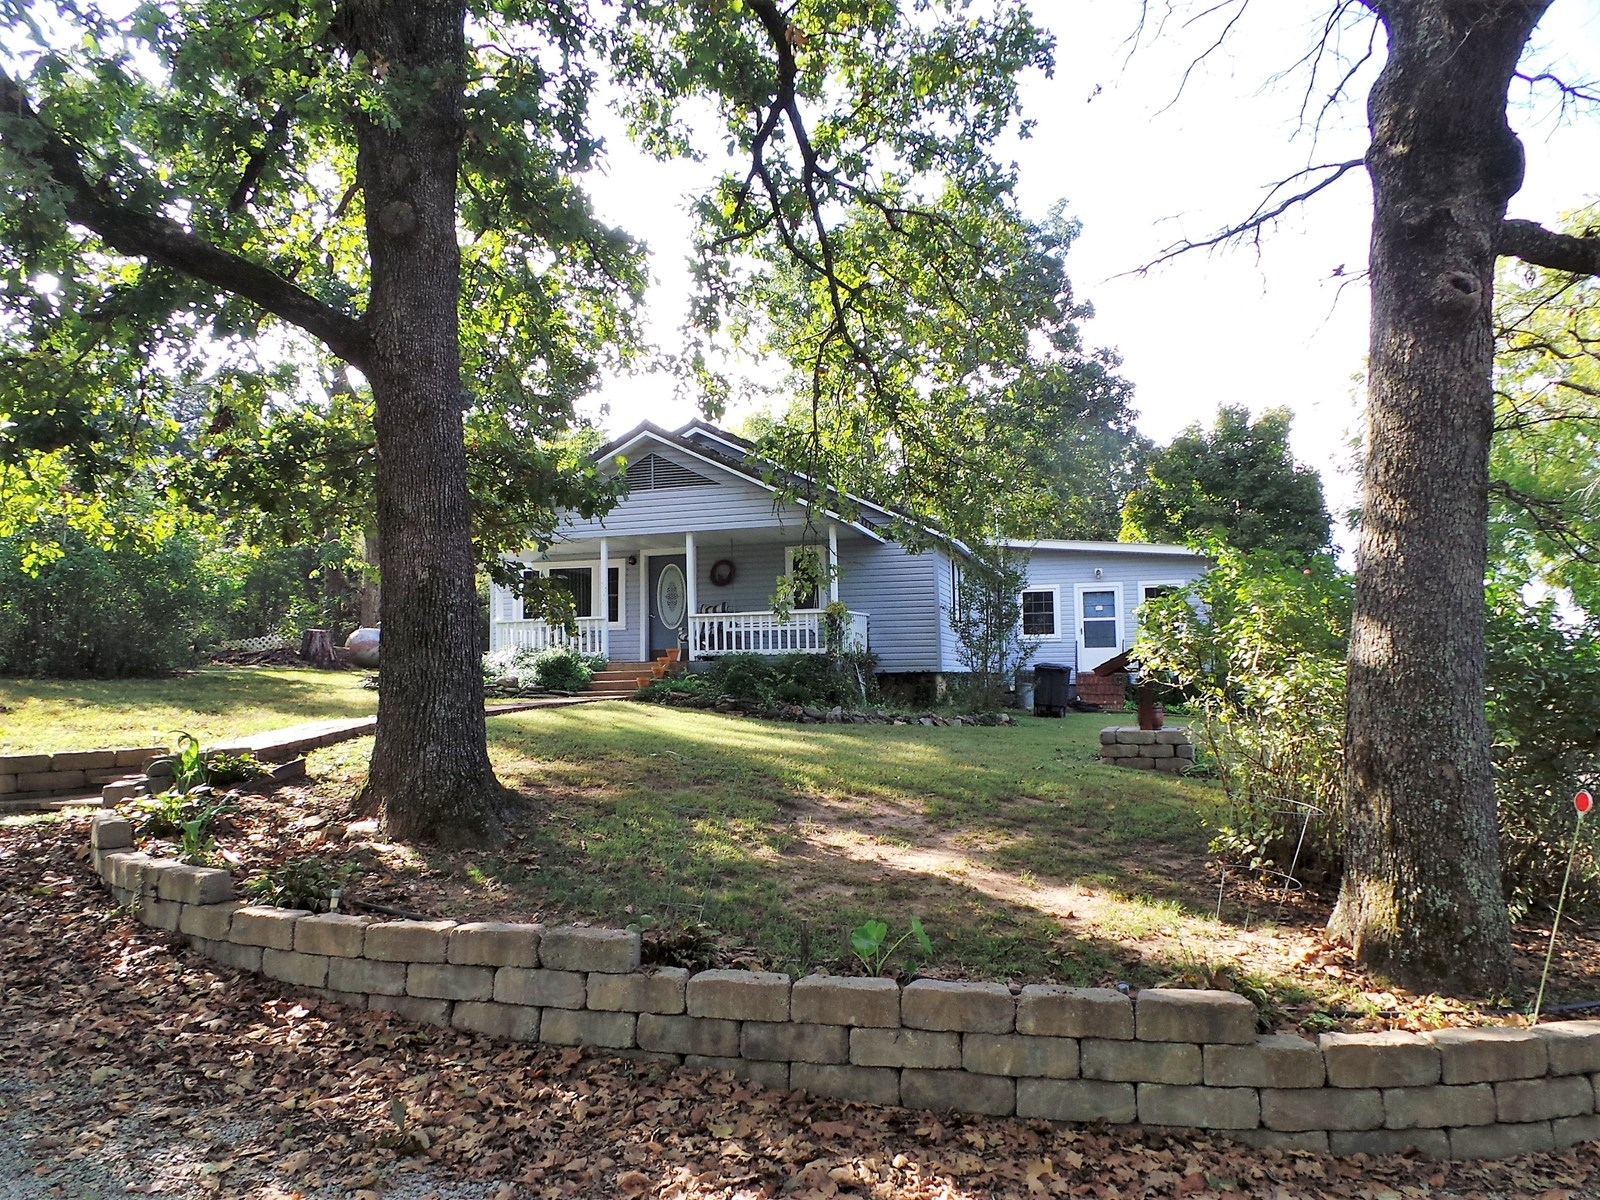 HOME FOR SALE IN THE OZARK MOUNTAINS